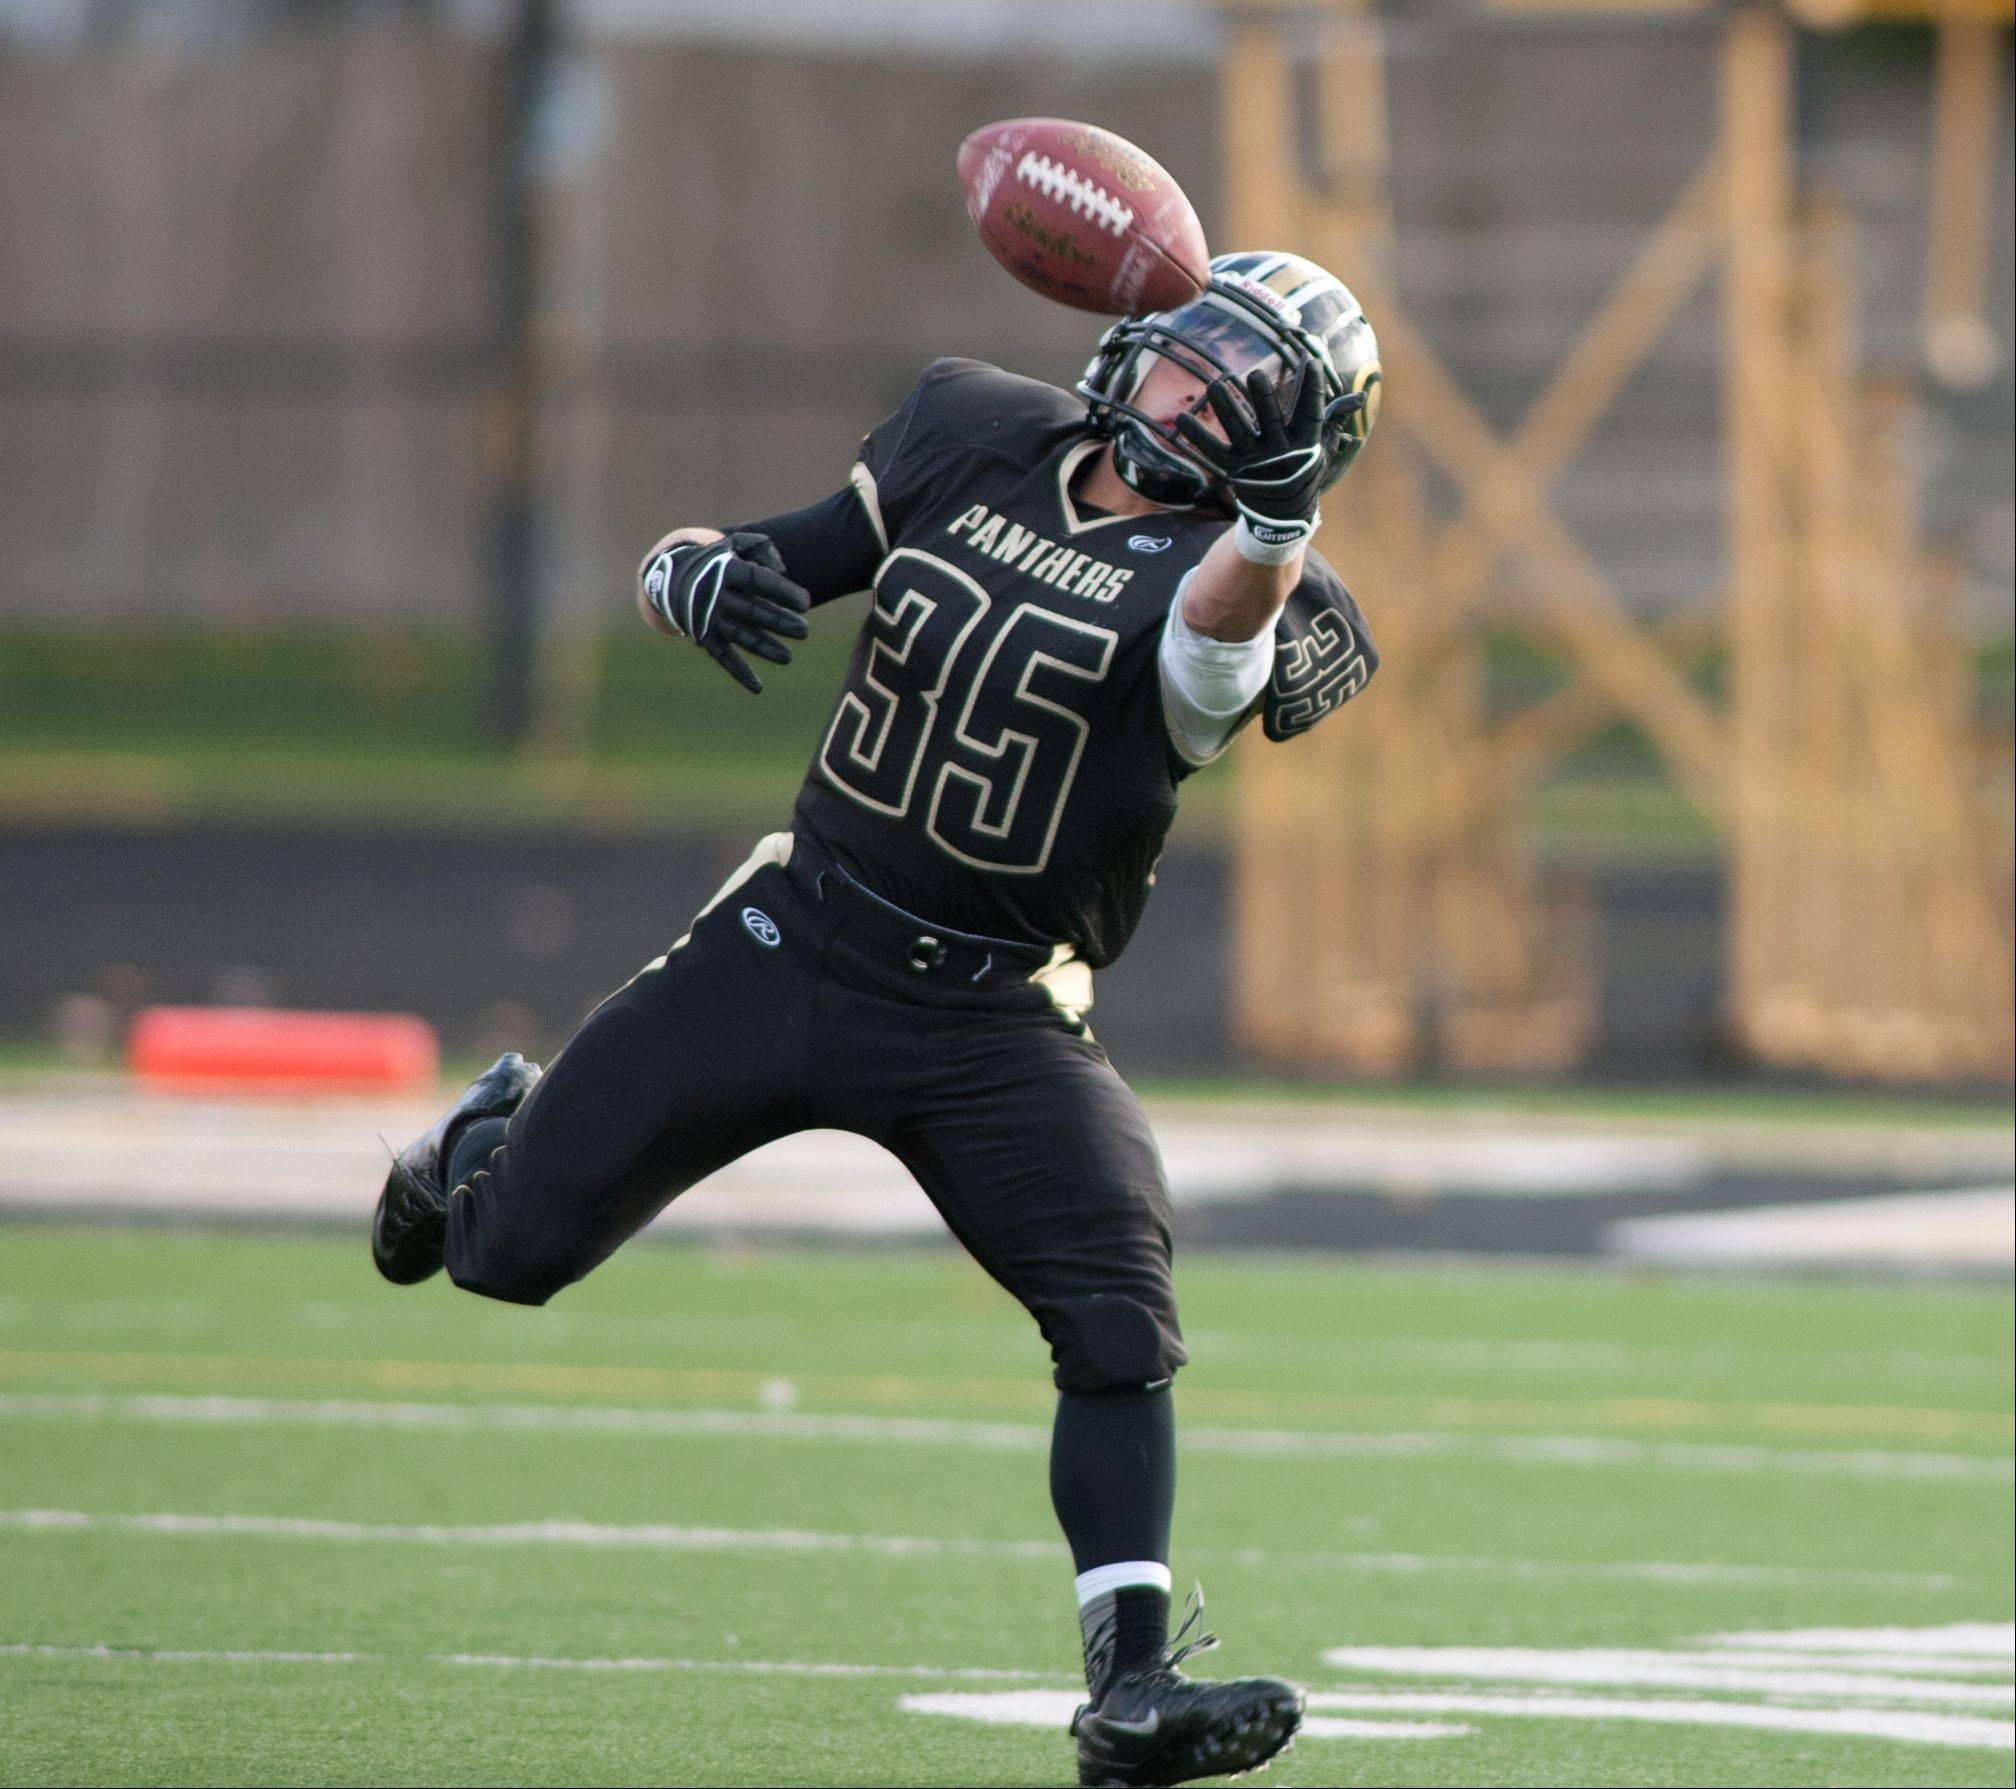 Playoffs -Round Two- Photos from the Stevenson at Glenbard North football game on Saturday, Nov. 9.